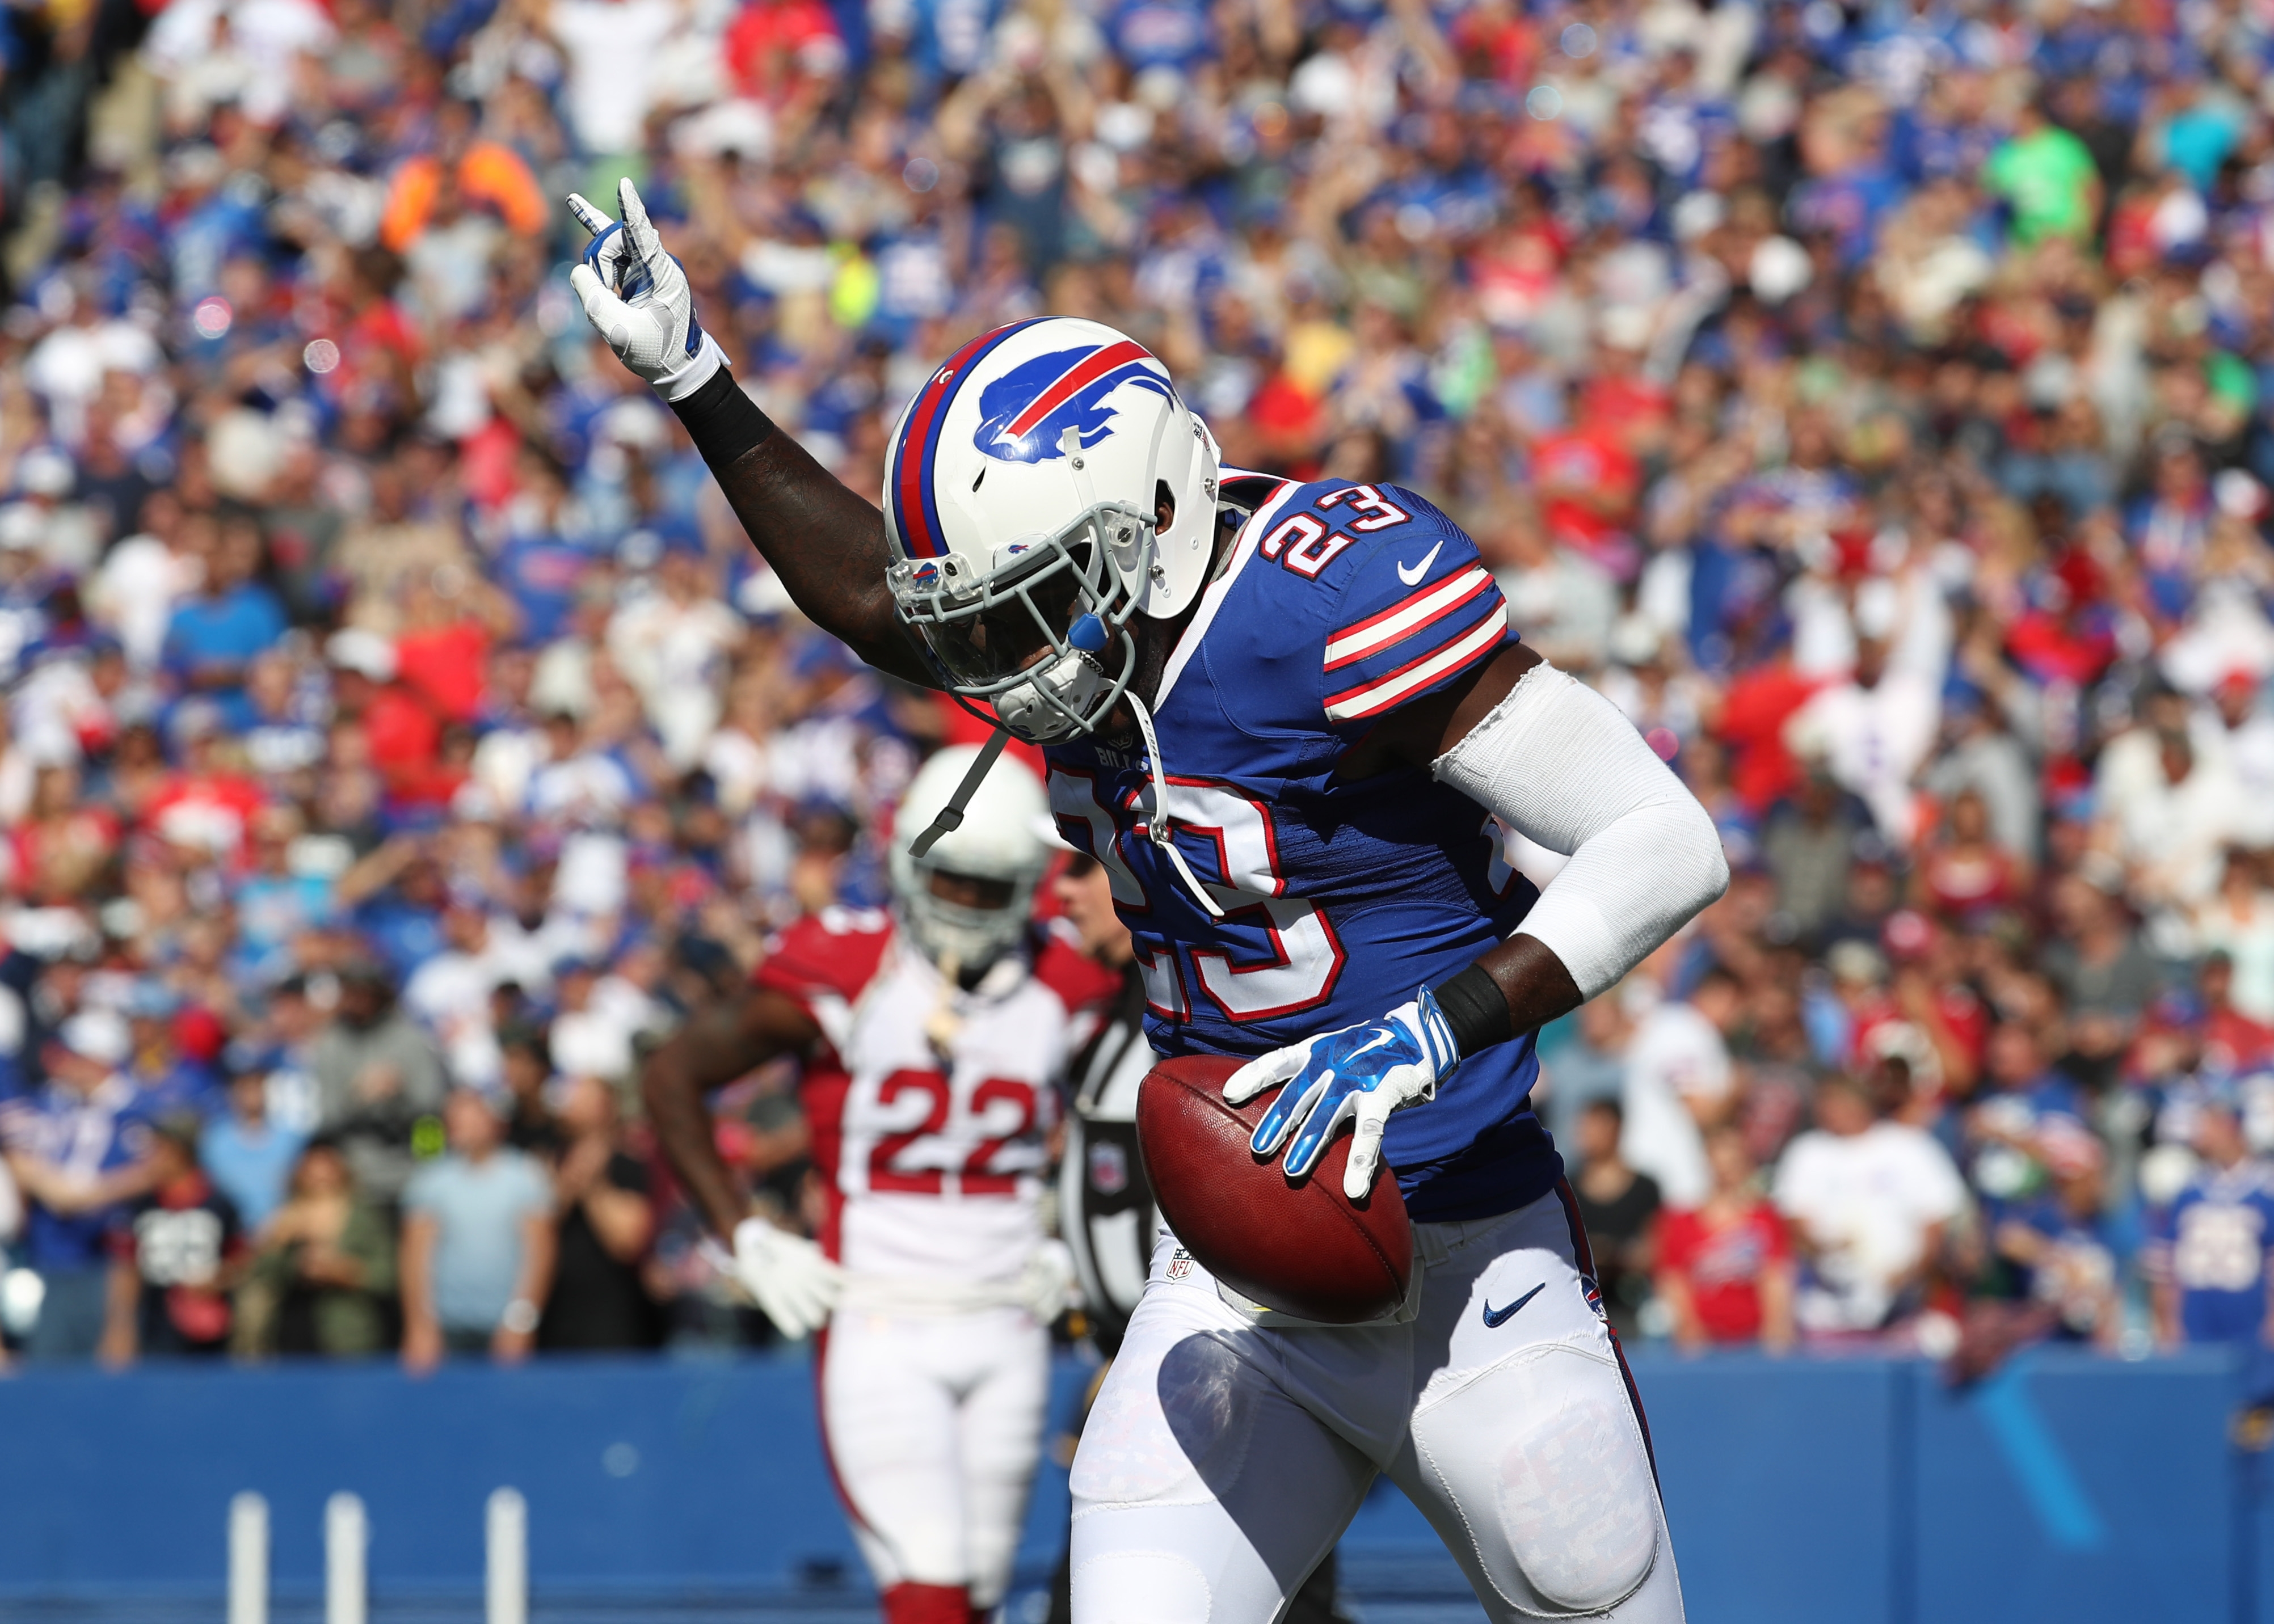 Buffalo Bills safety Aaron Williams celebrates his fumble recovery and touchdown in the third quarter against the Arizona Cardinals at New Era Field in Orchard Park, N.Y. on Sunday, Sept. 25, 2016.  (James P. McCoy/ Buffalo News)